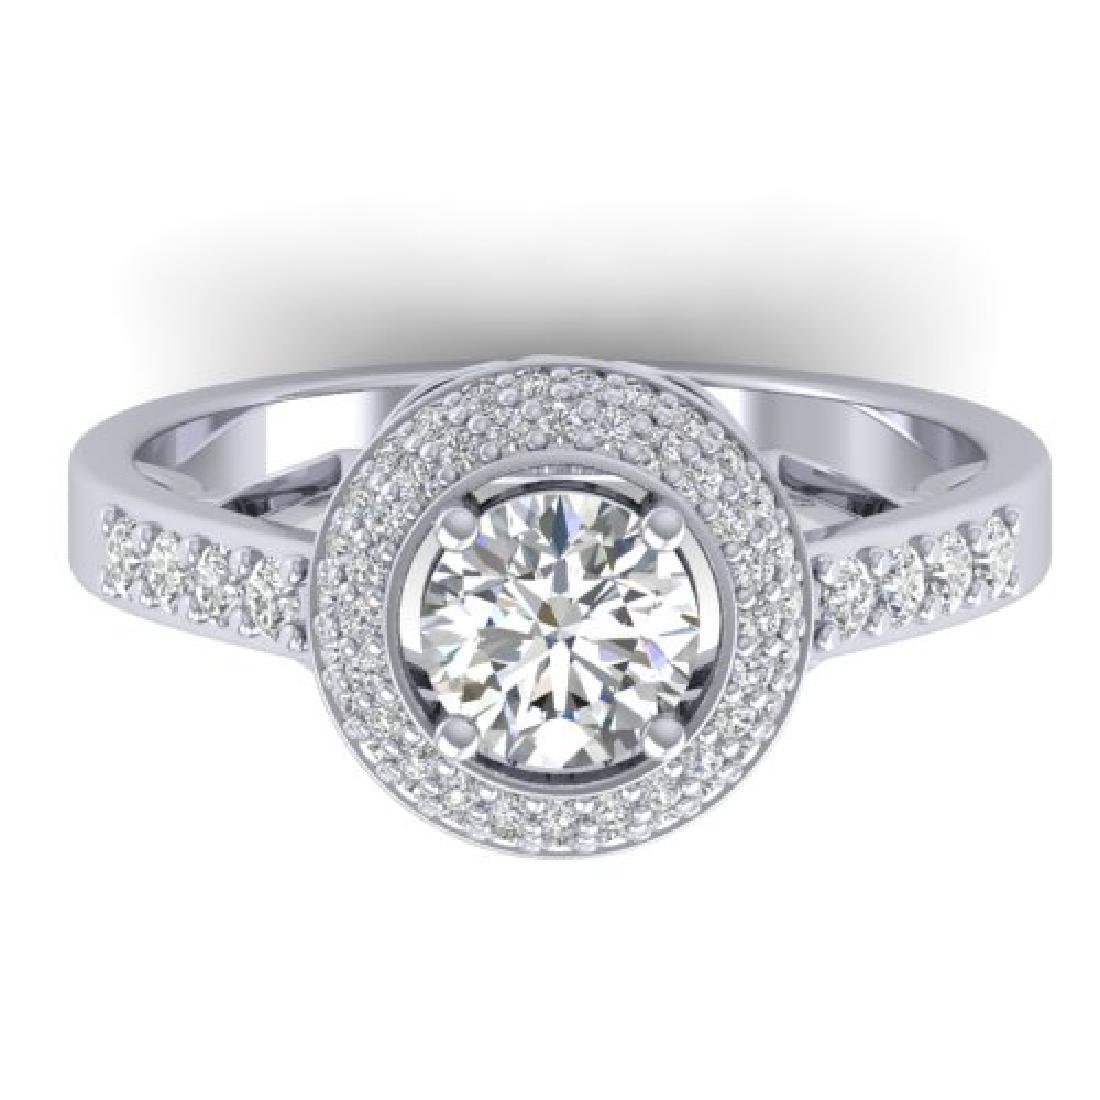 1.45 CTW Certified VS/SI Diamond Art Deco Micro Halo